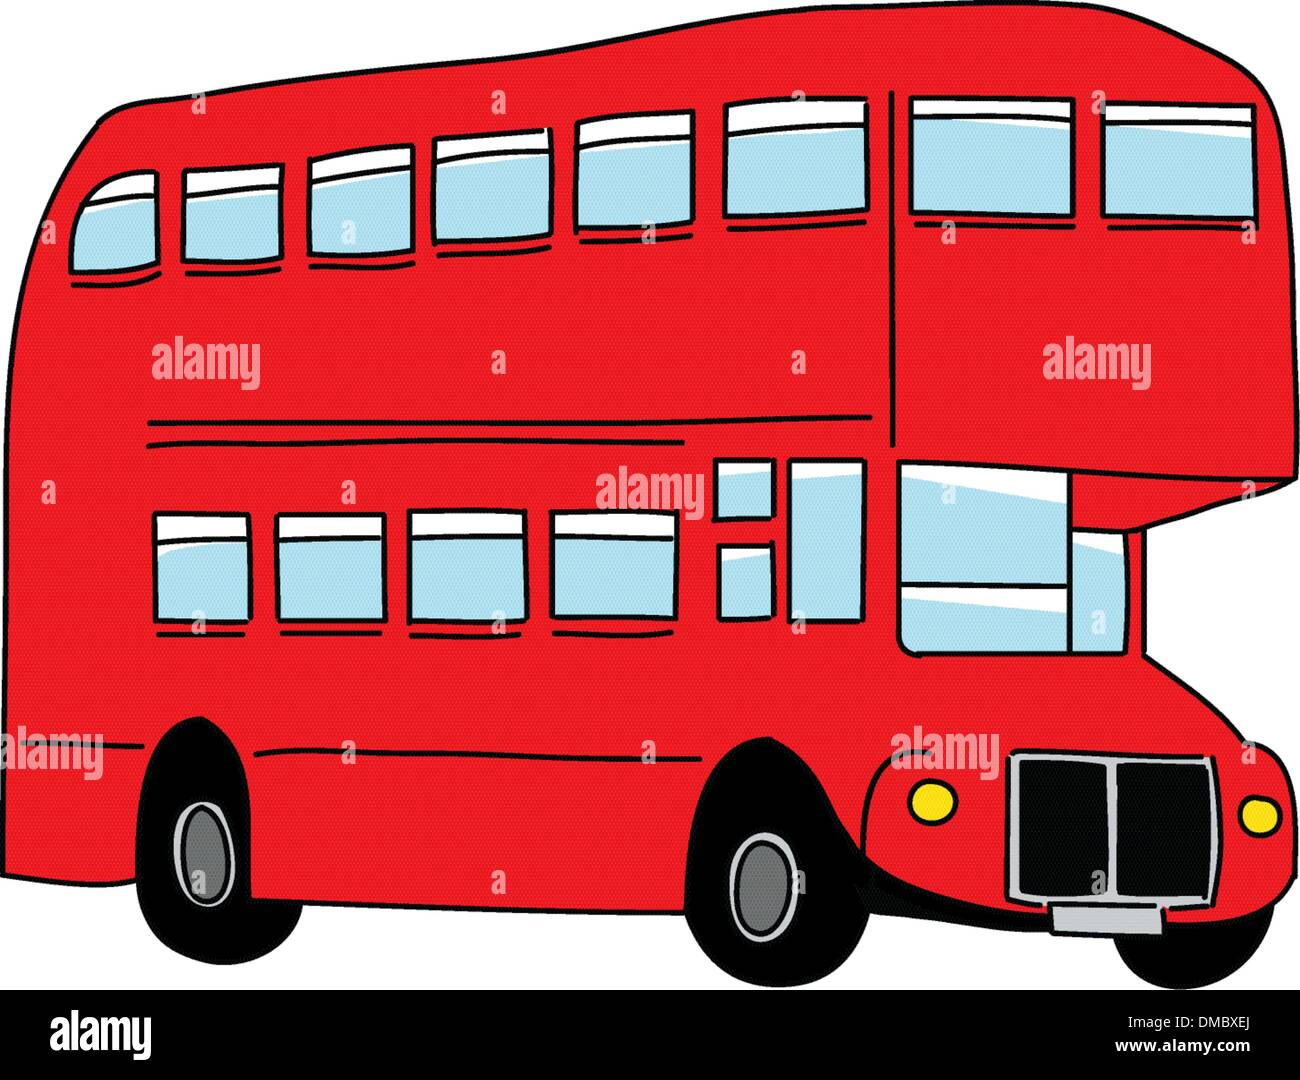 London bus - Stock Image